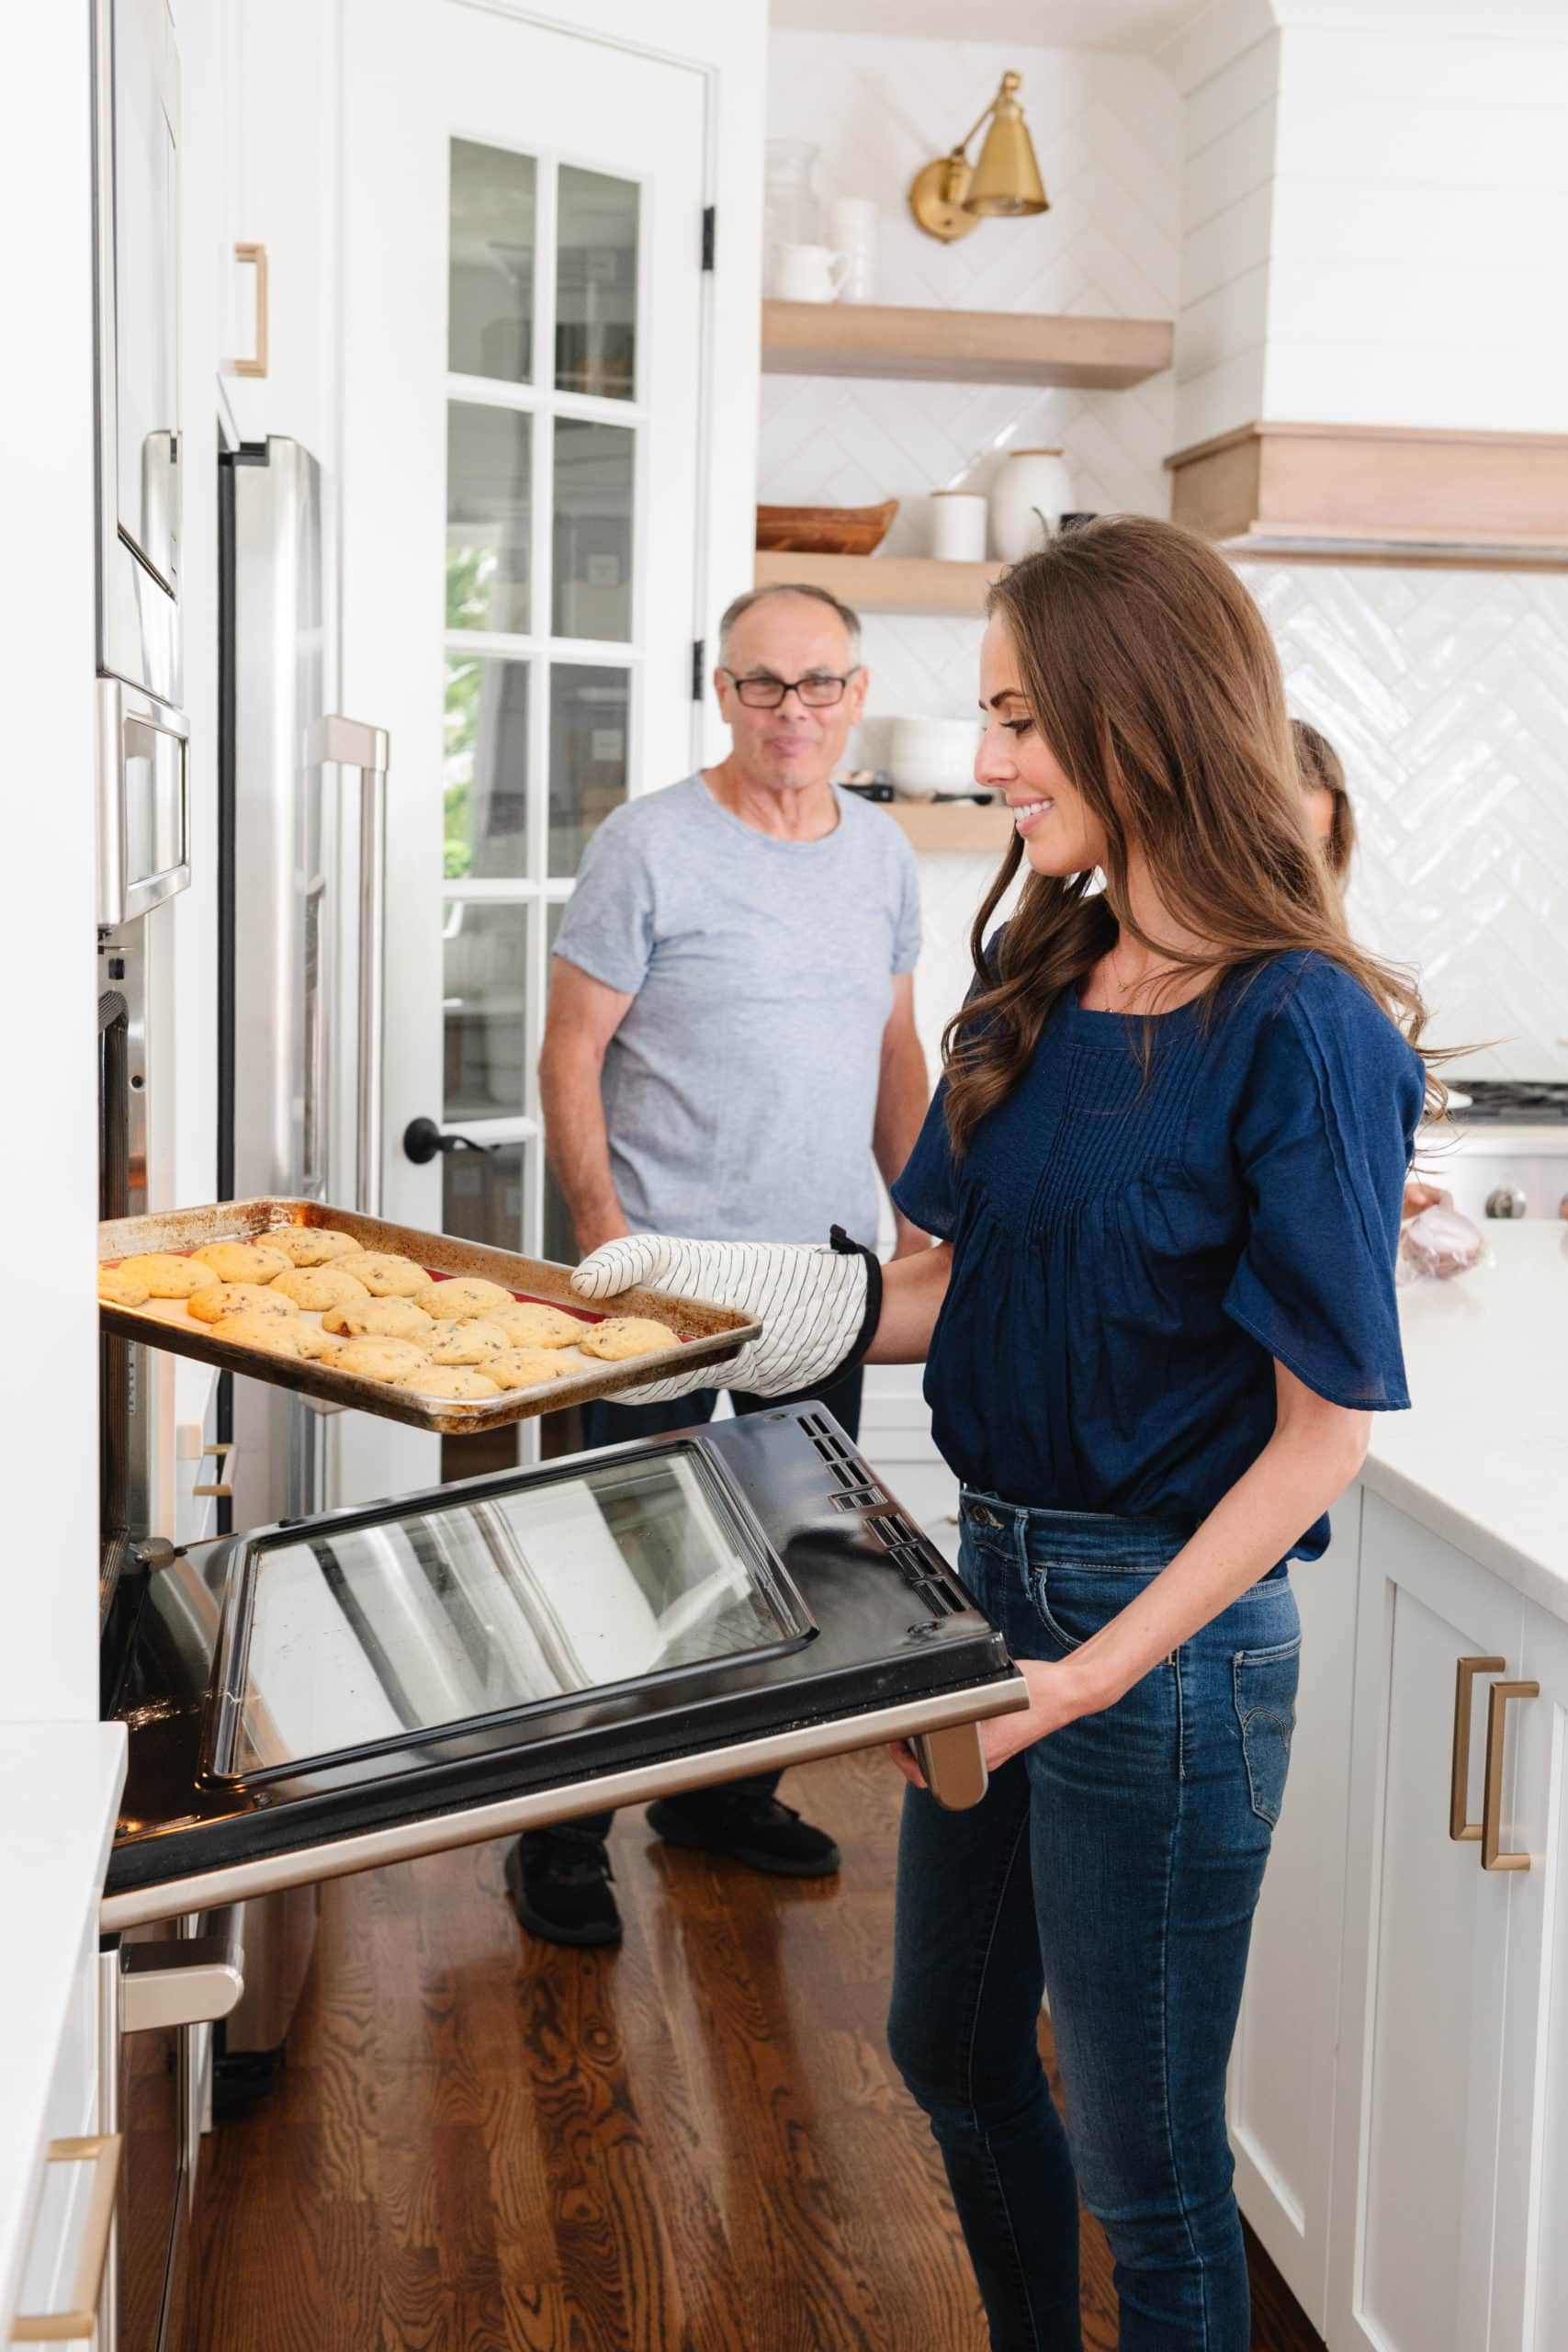 a woman removing a tray of cookies from the oven with her proud father looking on in the background